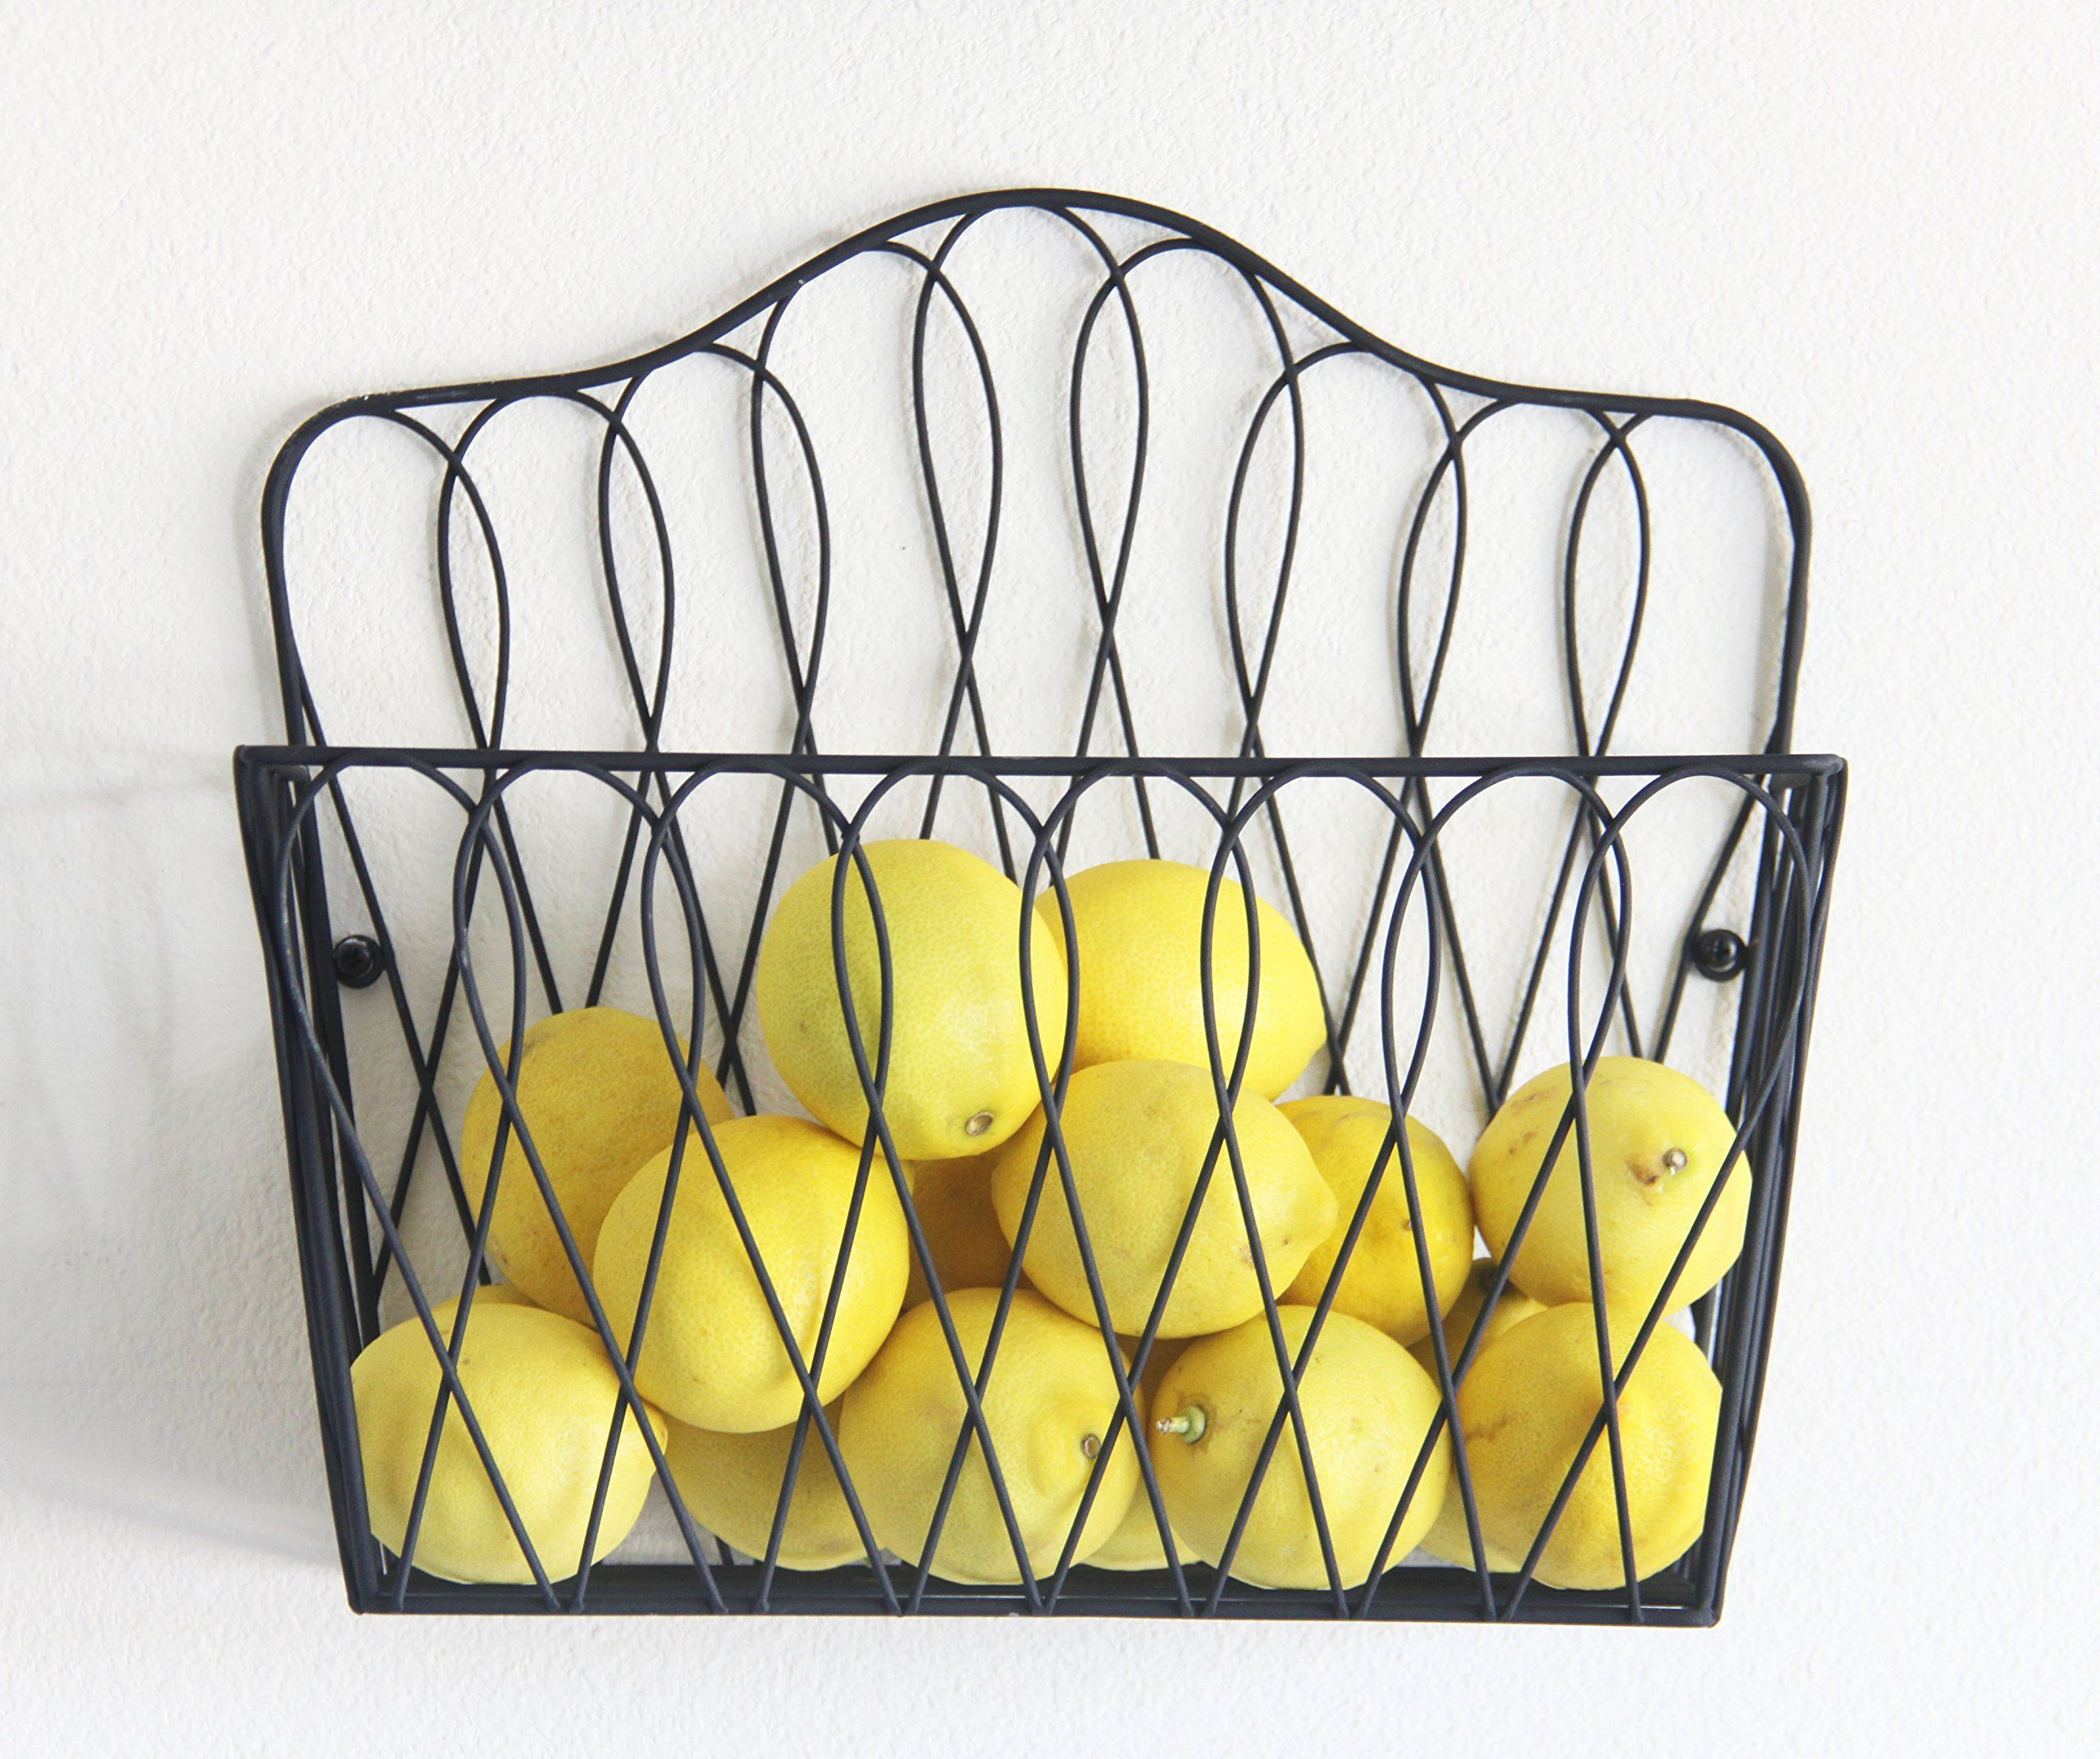 Wall Mount Storage Magazine Rack Fruit Basket also for magazines